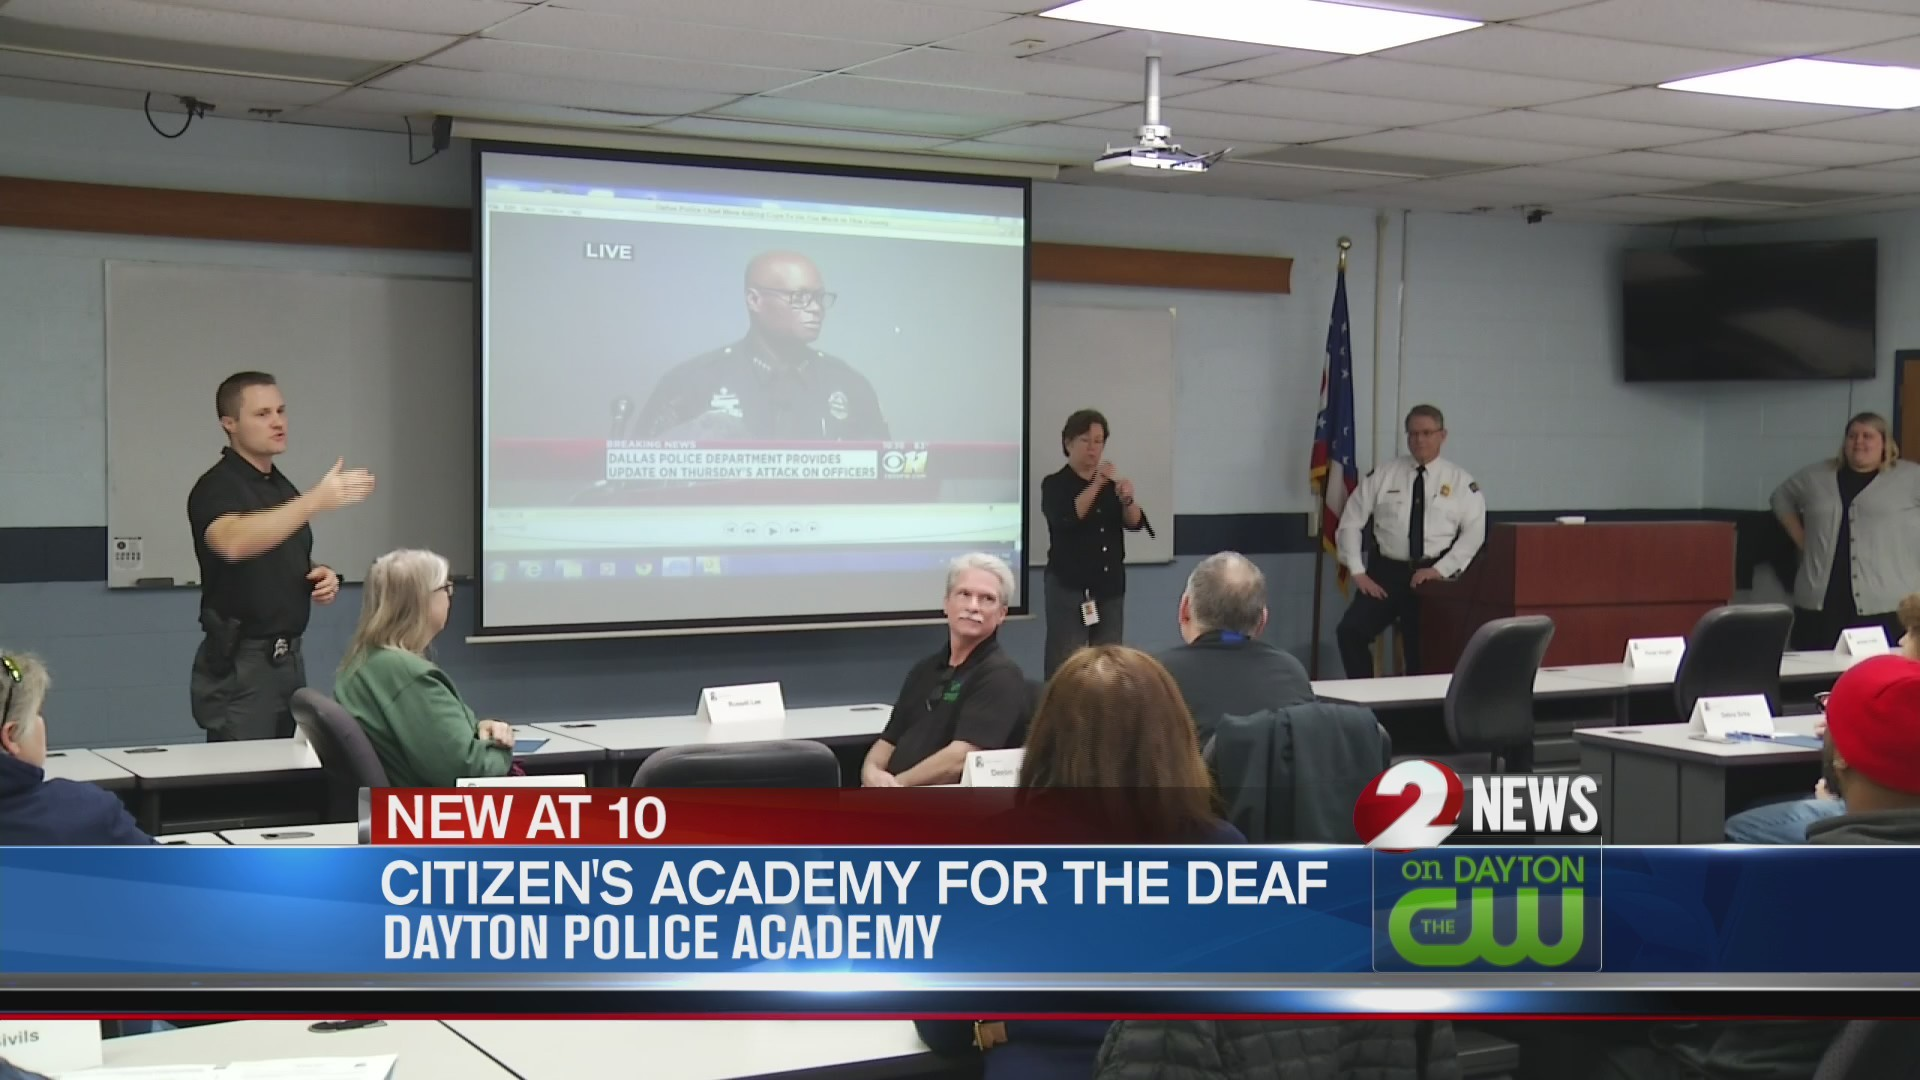 Dayton PD begins Citizens Academy for the Deaf